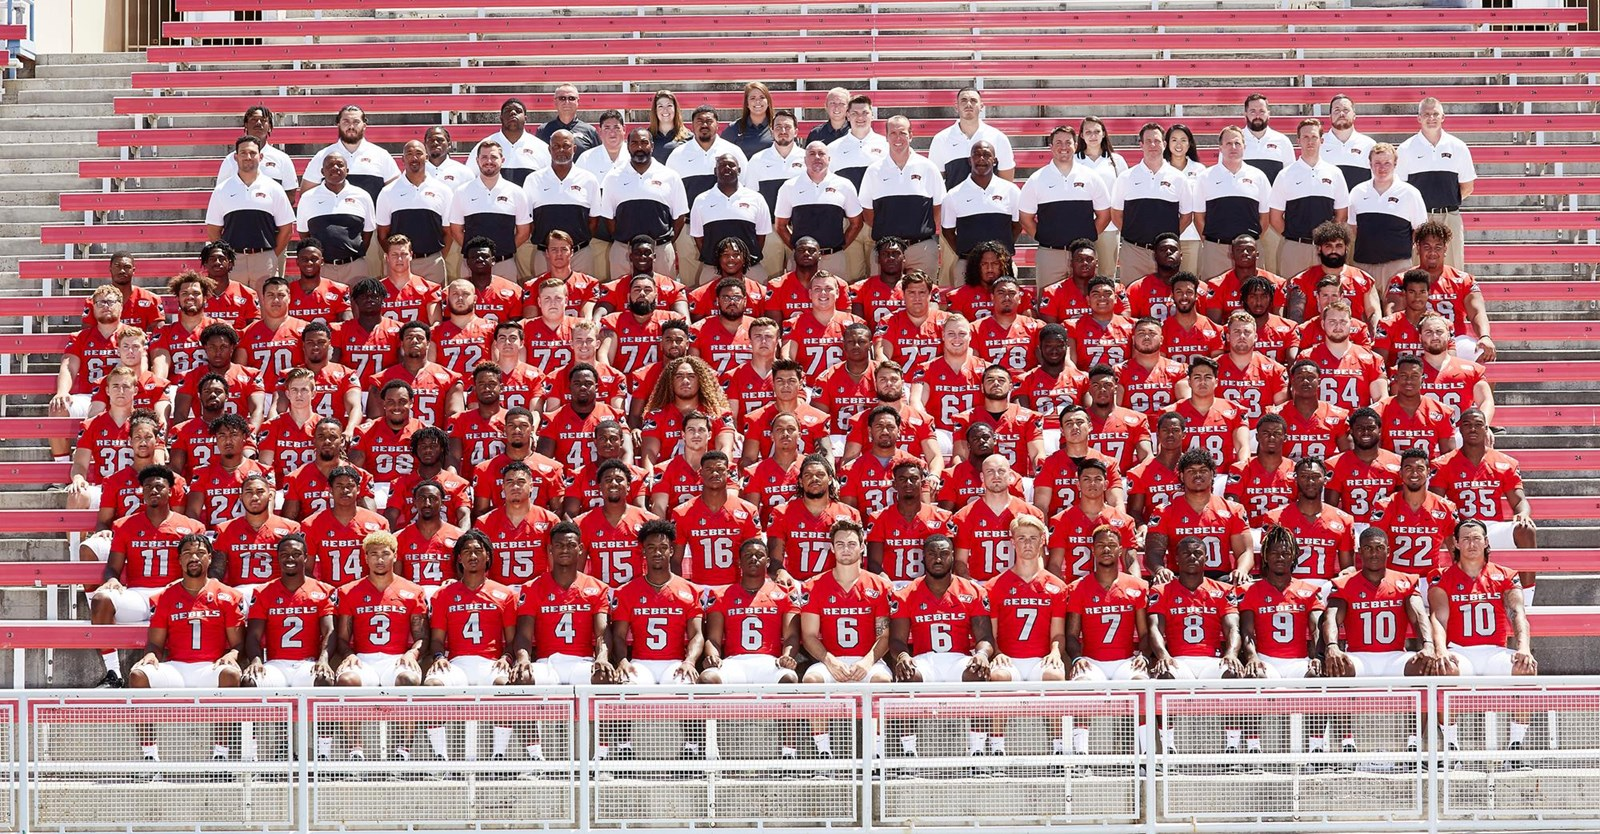 2019 Football Roster - University of Nevada Las Vegas Athletics